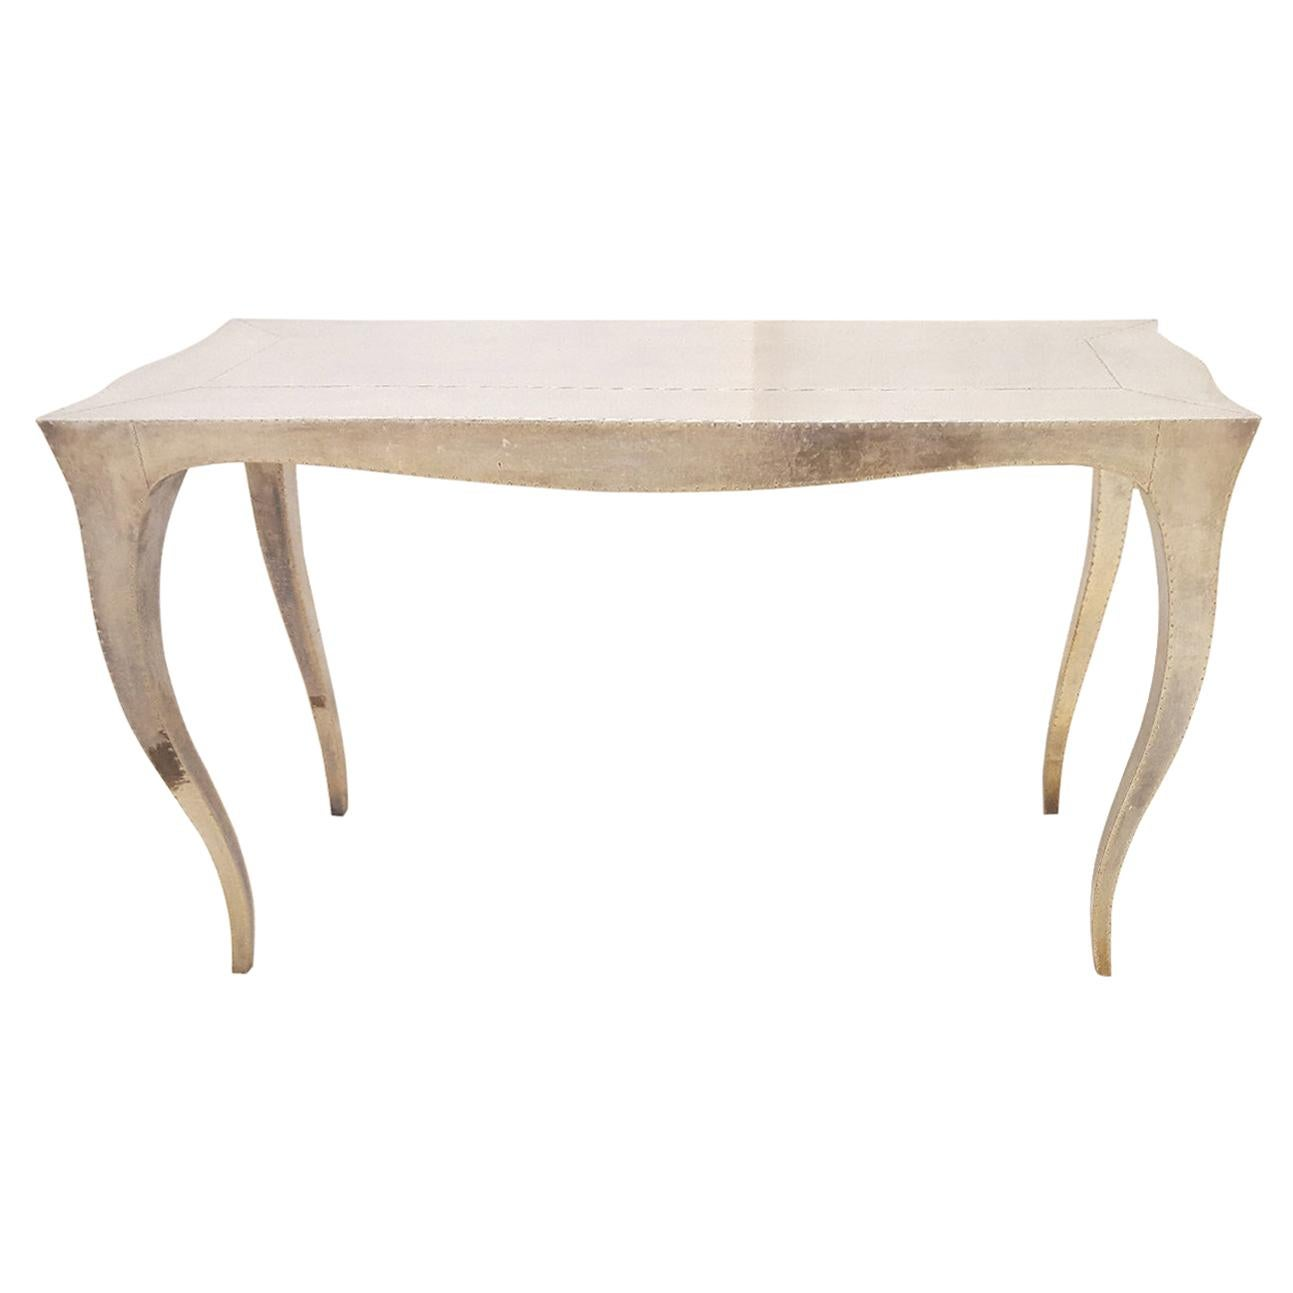 Louise Console Table by Paul Mathieu for Stephanie Odegard